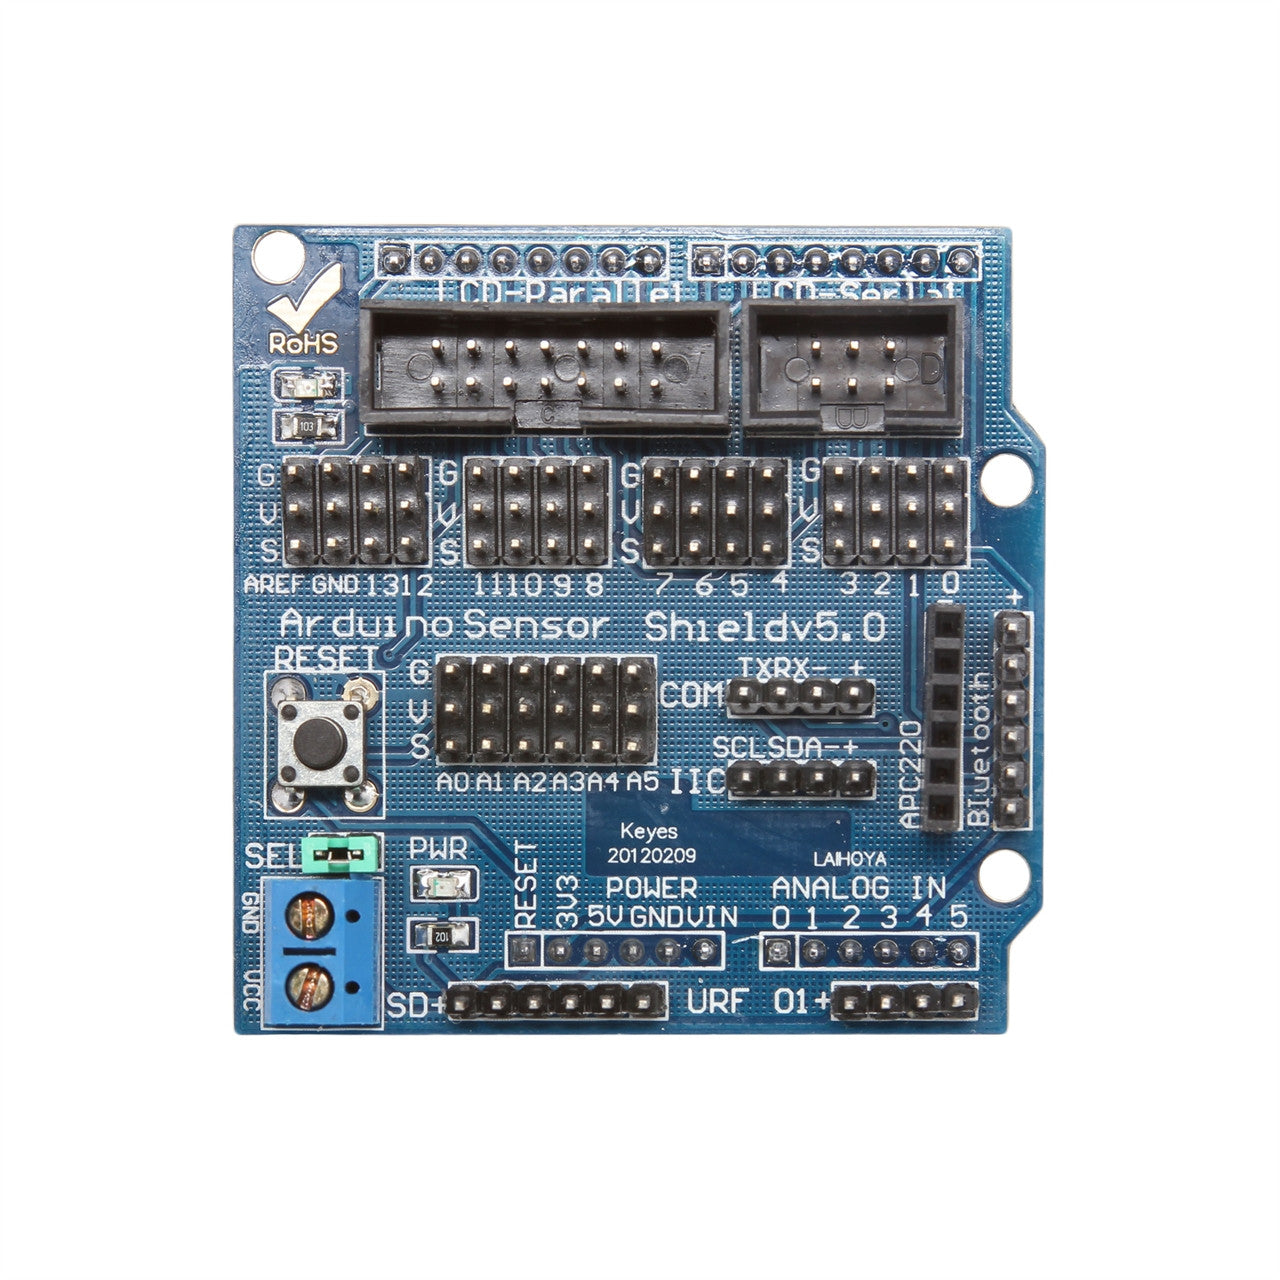 Https Daily Connectedcities Boost Converter 150w Dc 10 32v To 12 35v Step Up Bb 51 0000087 Sensor Shield For Arduino Unojpegv1527267822